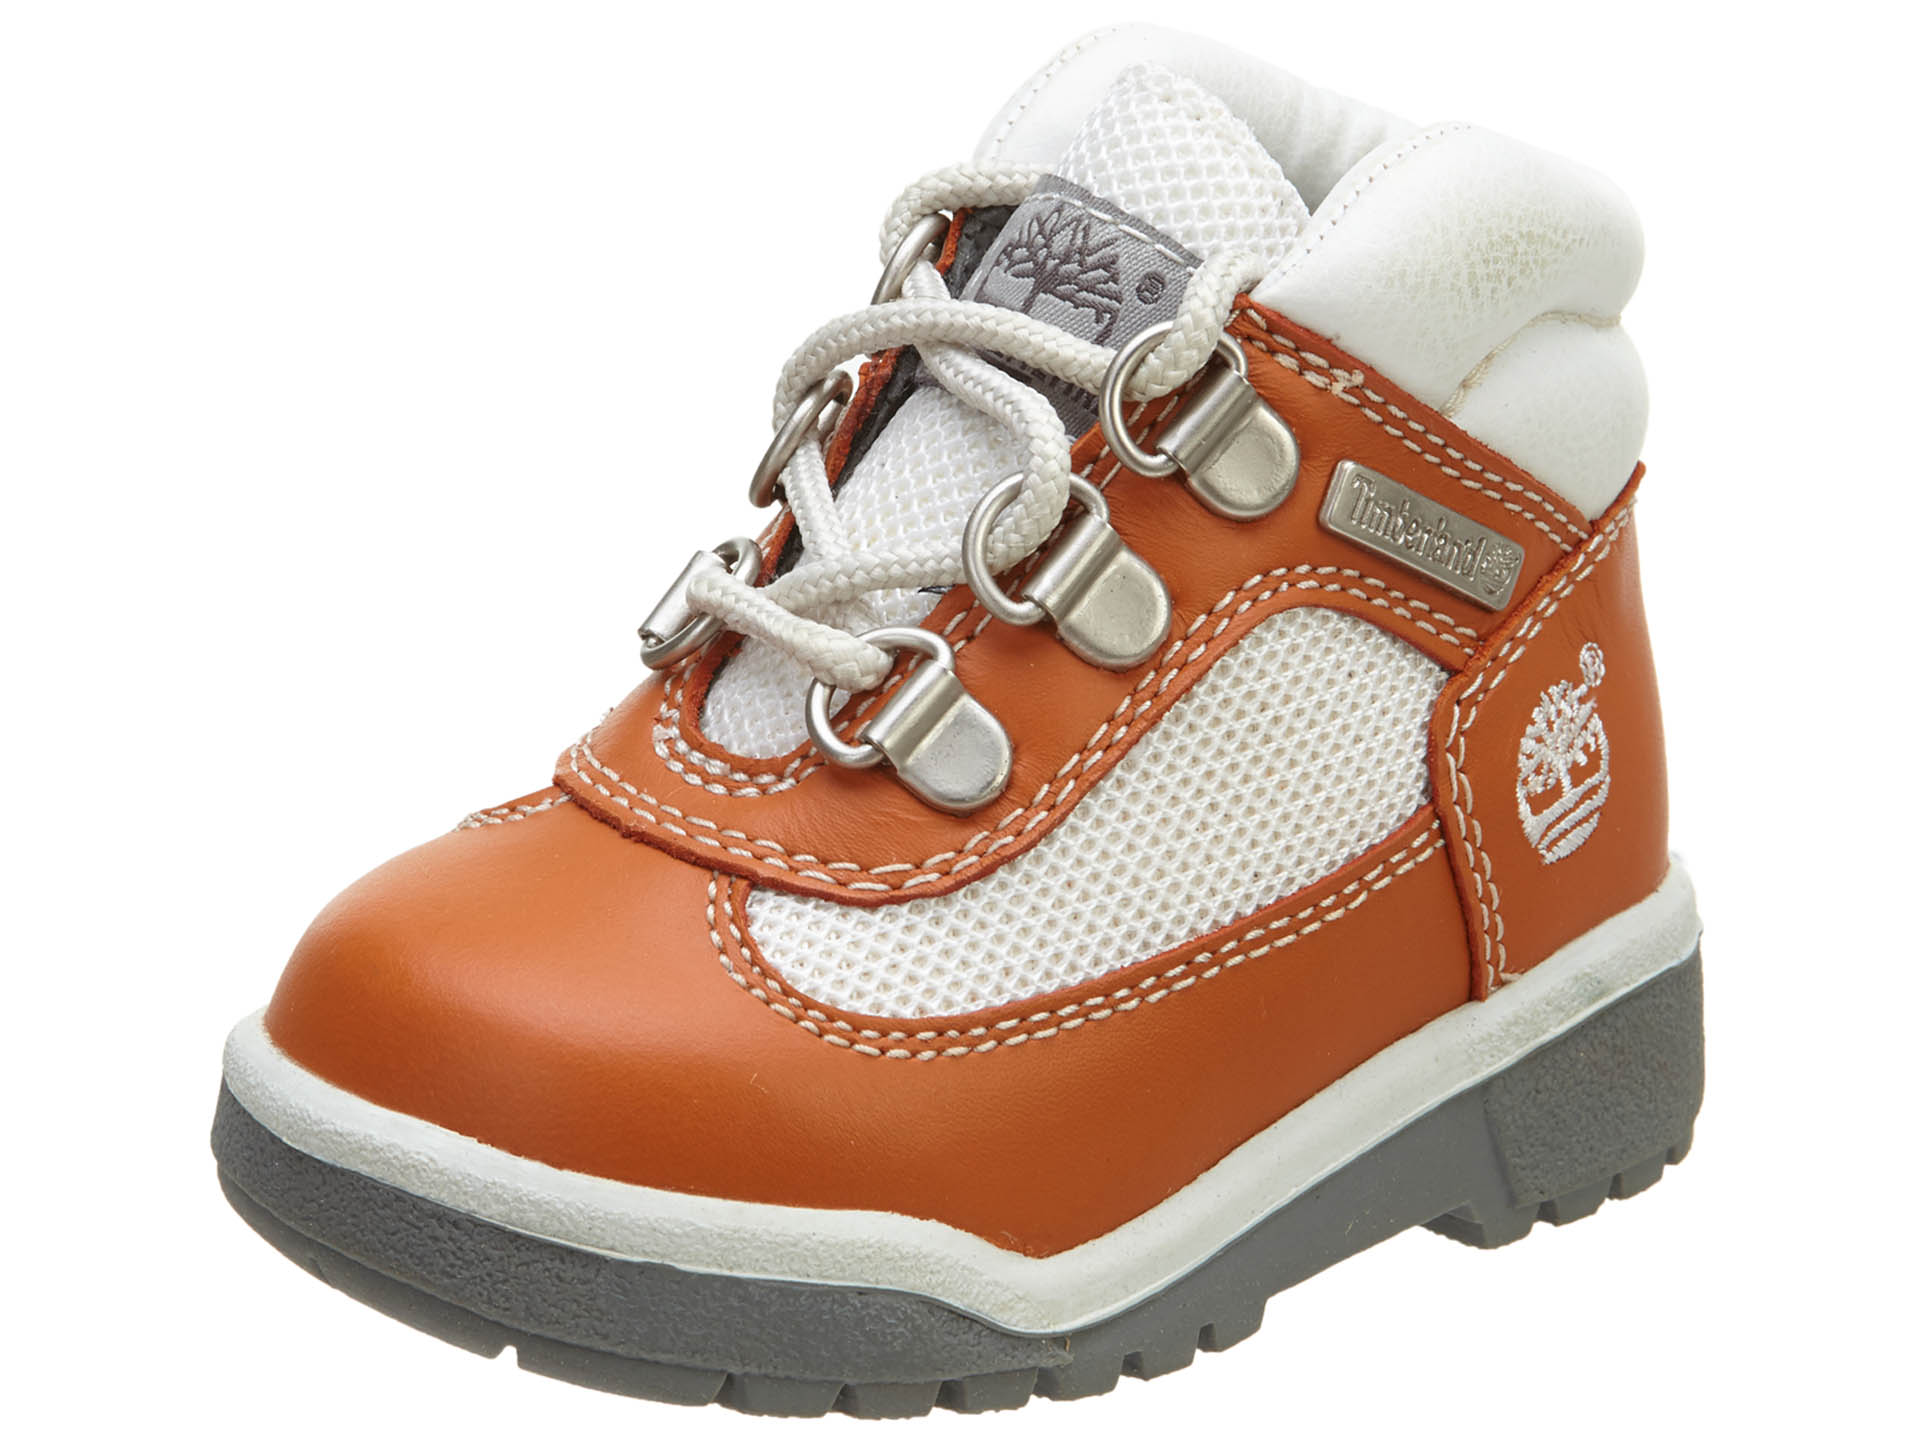 Timberland Toddler's T Field Boot Toddlers Style : 16818 by